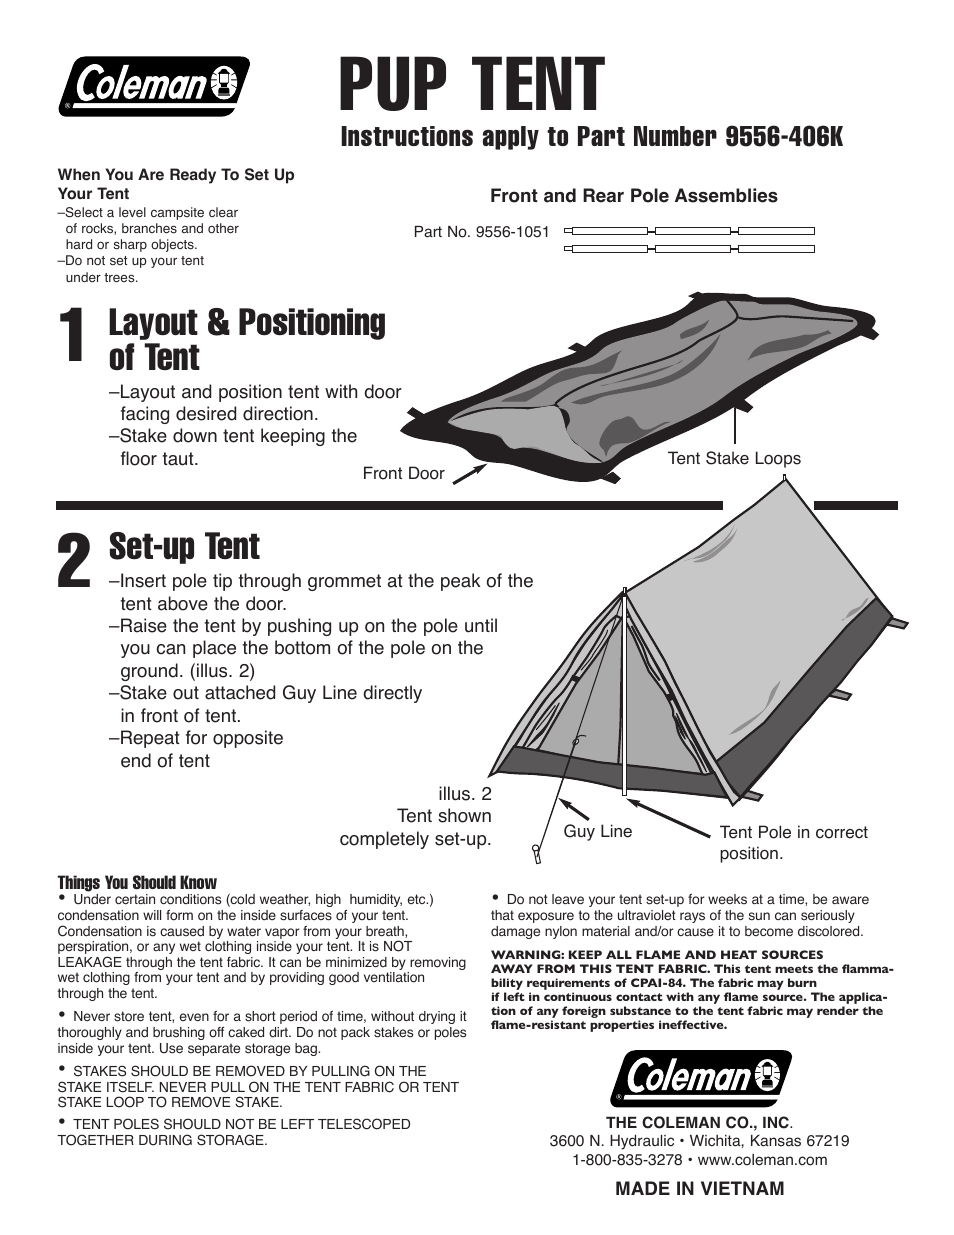 Coleman Pup Tent 9556 406k User Manual 1 Page